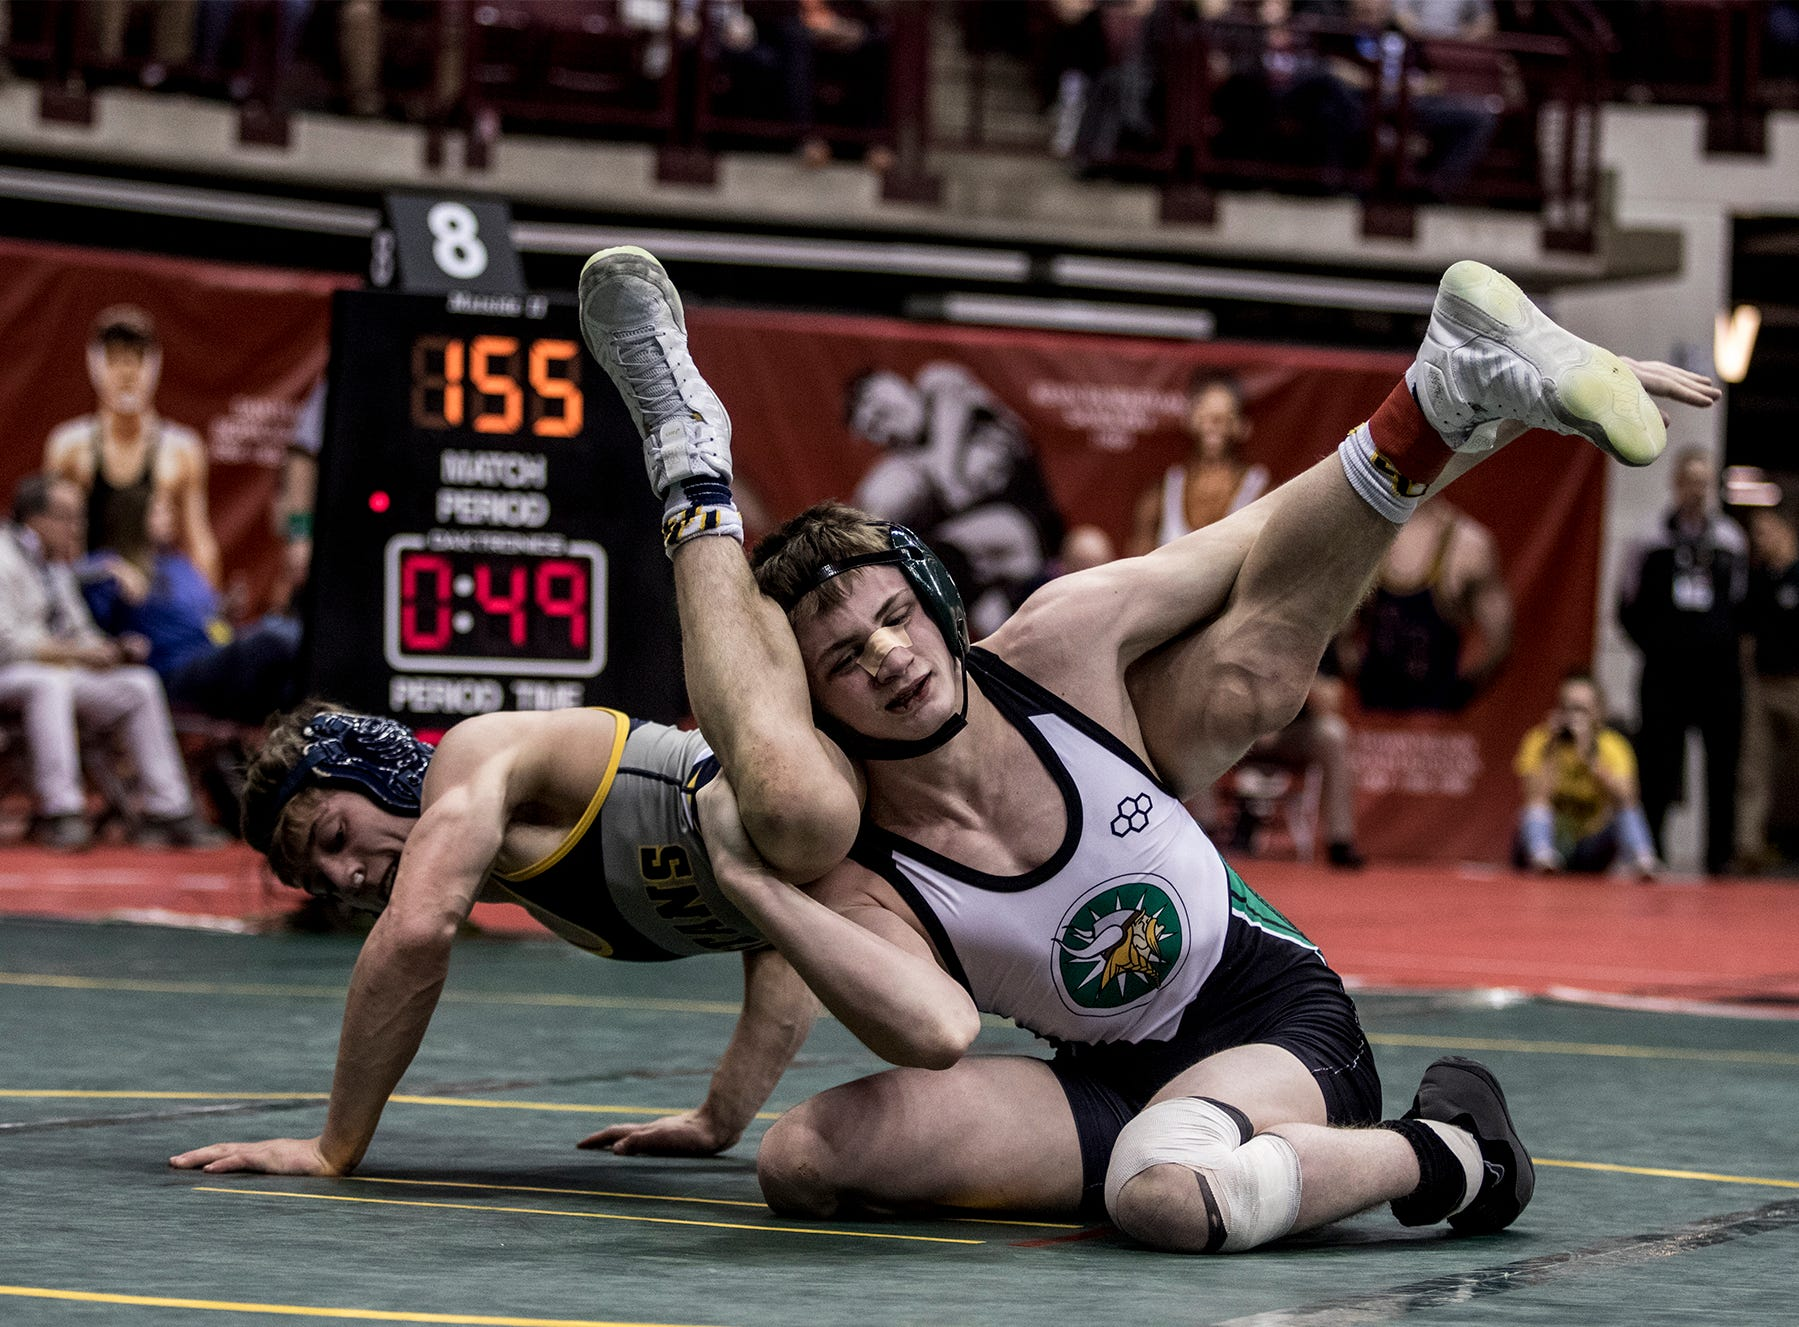 Klay Reeves  of Crestview, wrestles in the Division III 132 weight class at the state wrestling tournament Saturday.